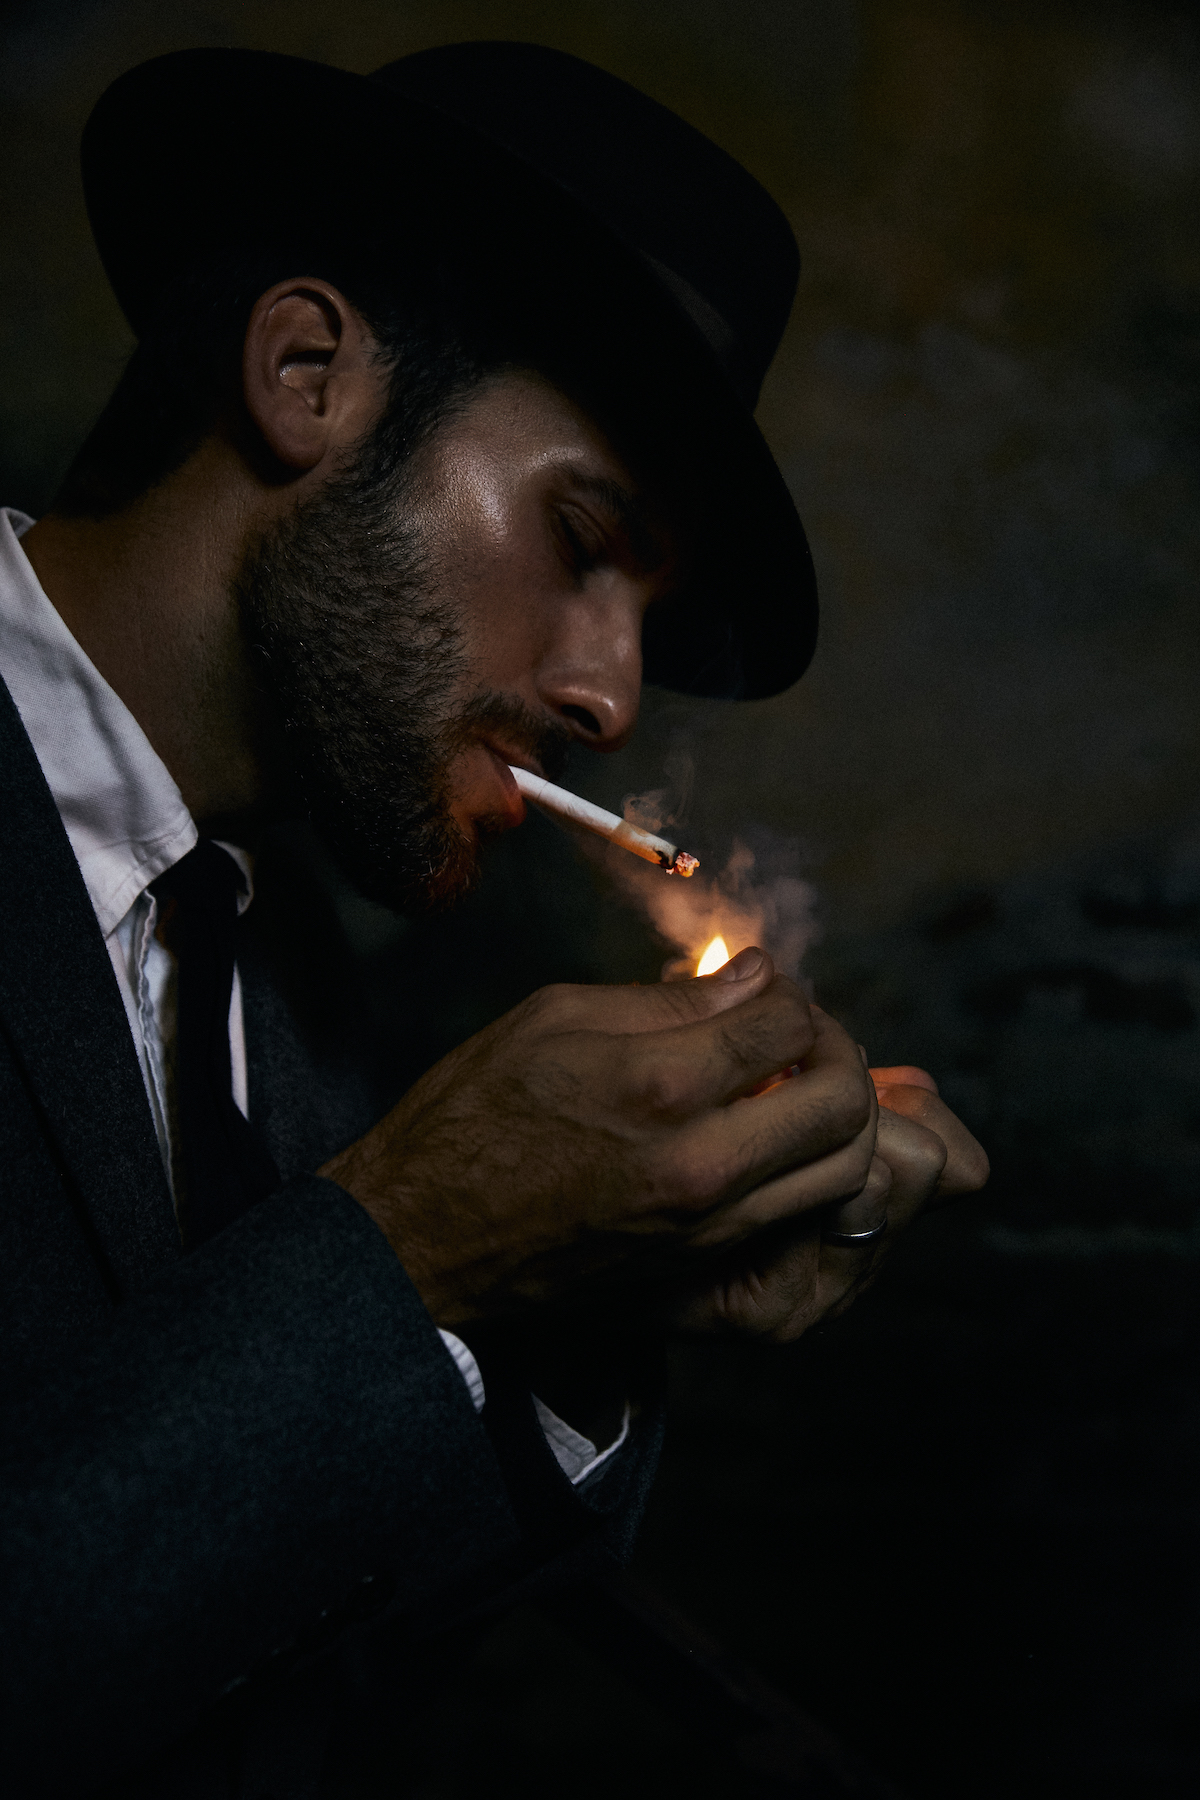 KRC - Man Smoking.jpg